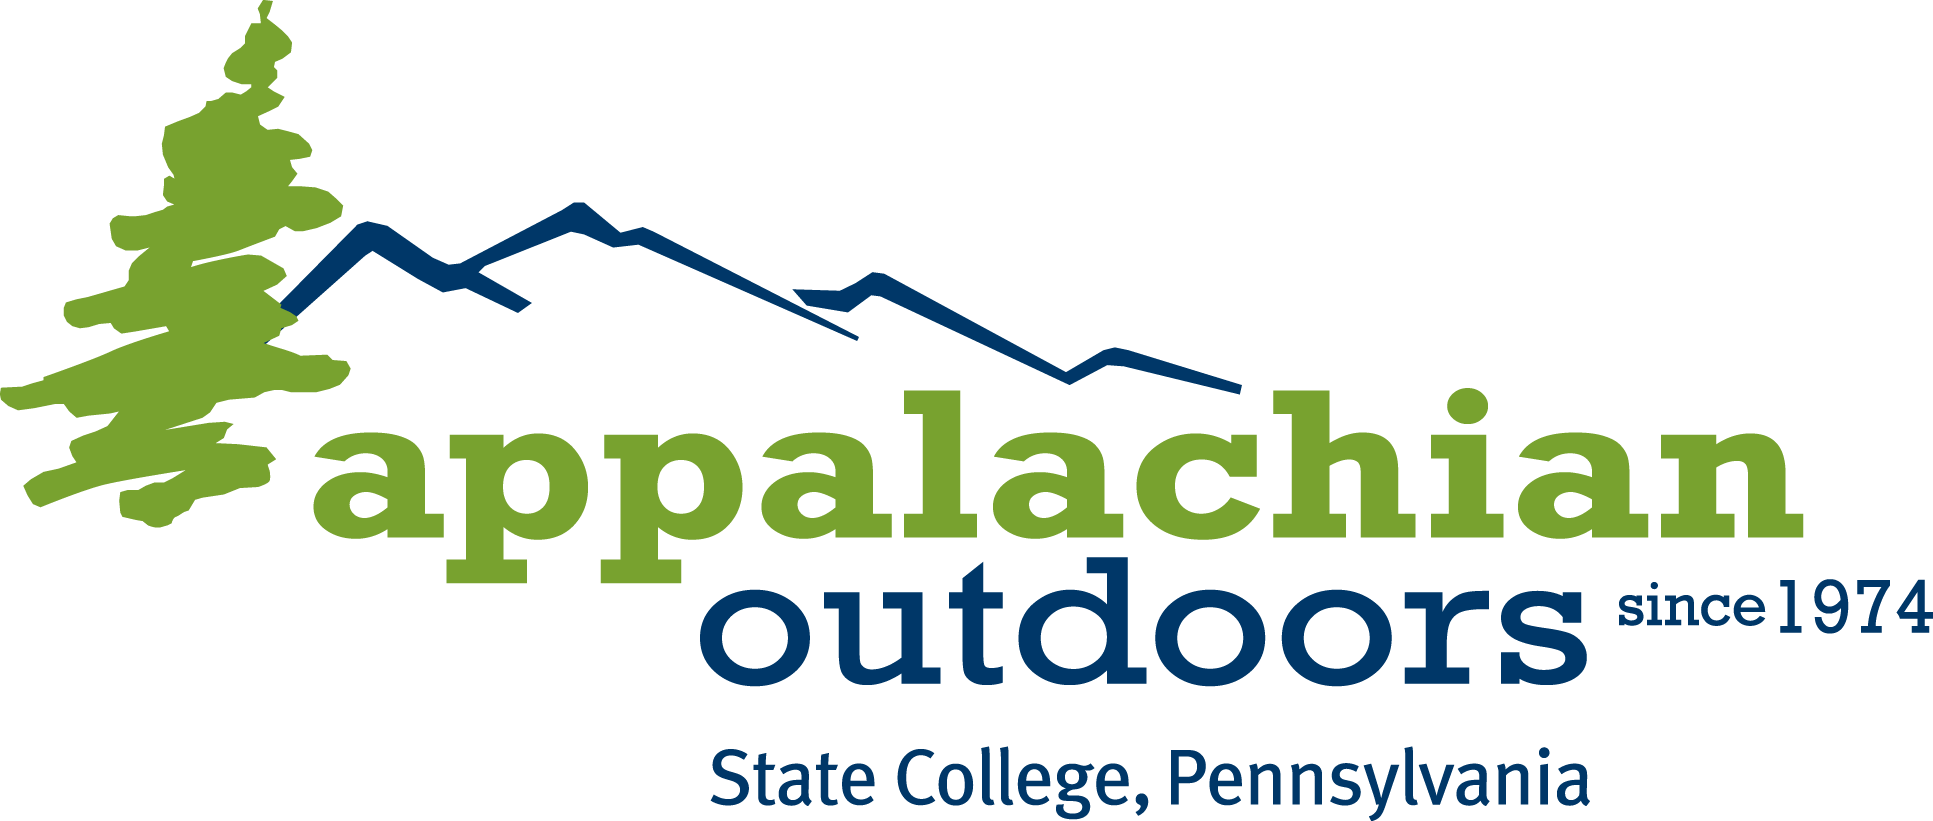 Appalachian Outdoors Color